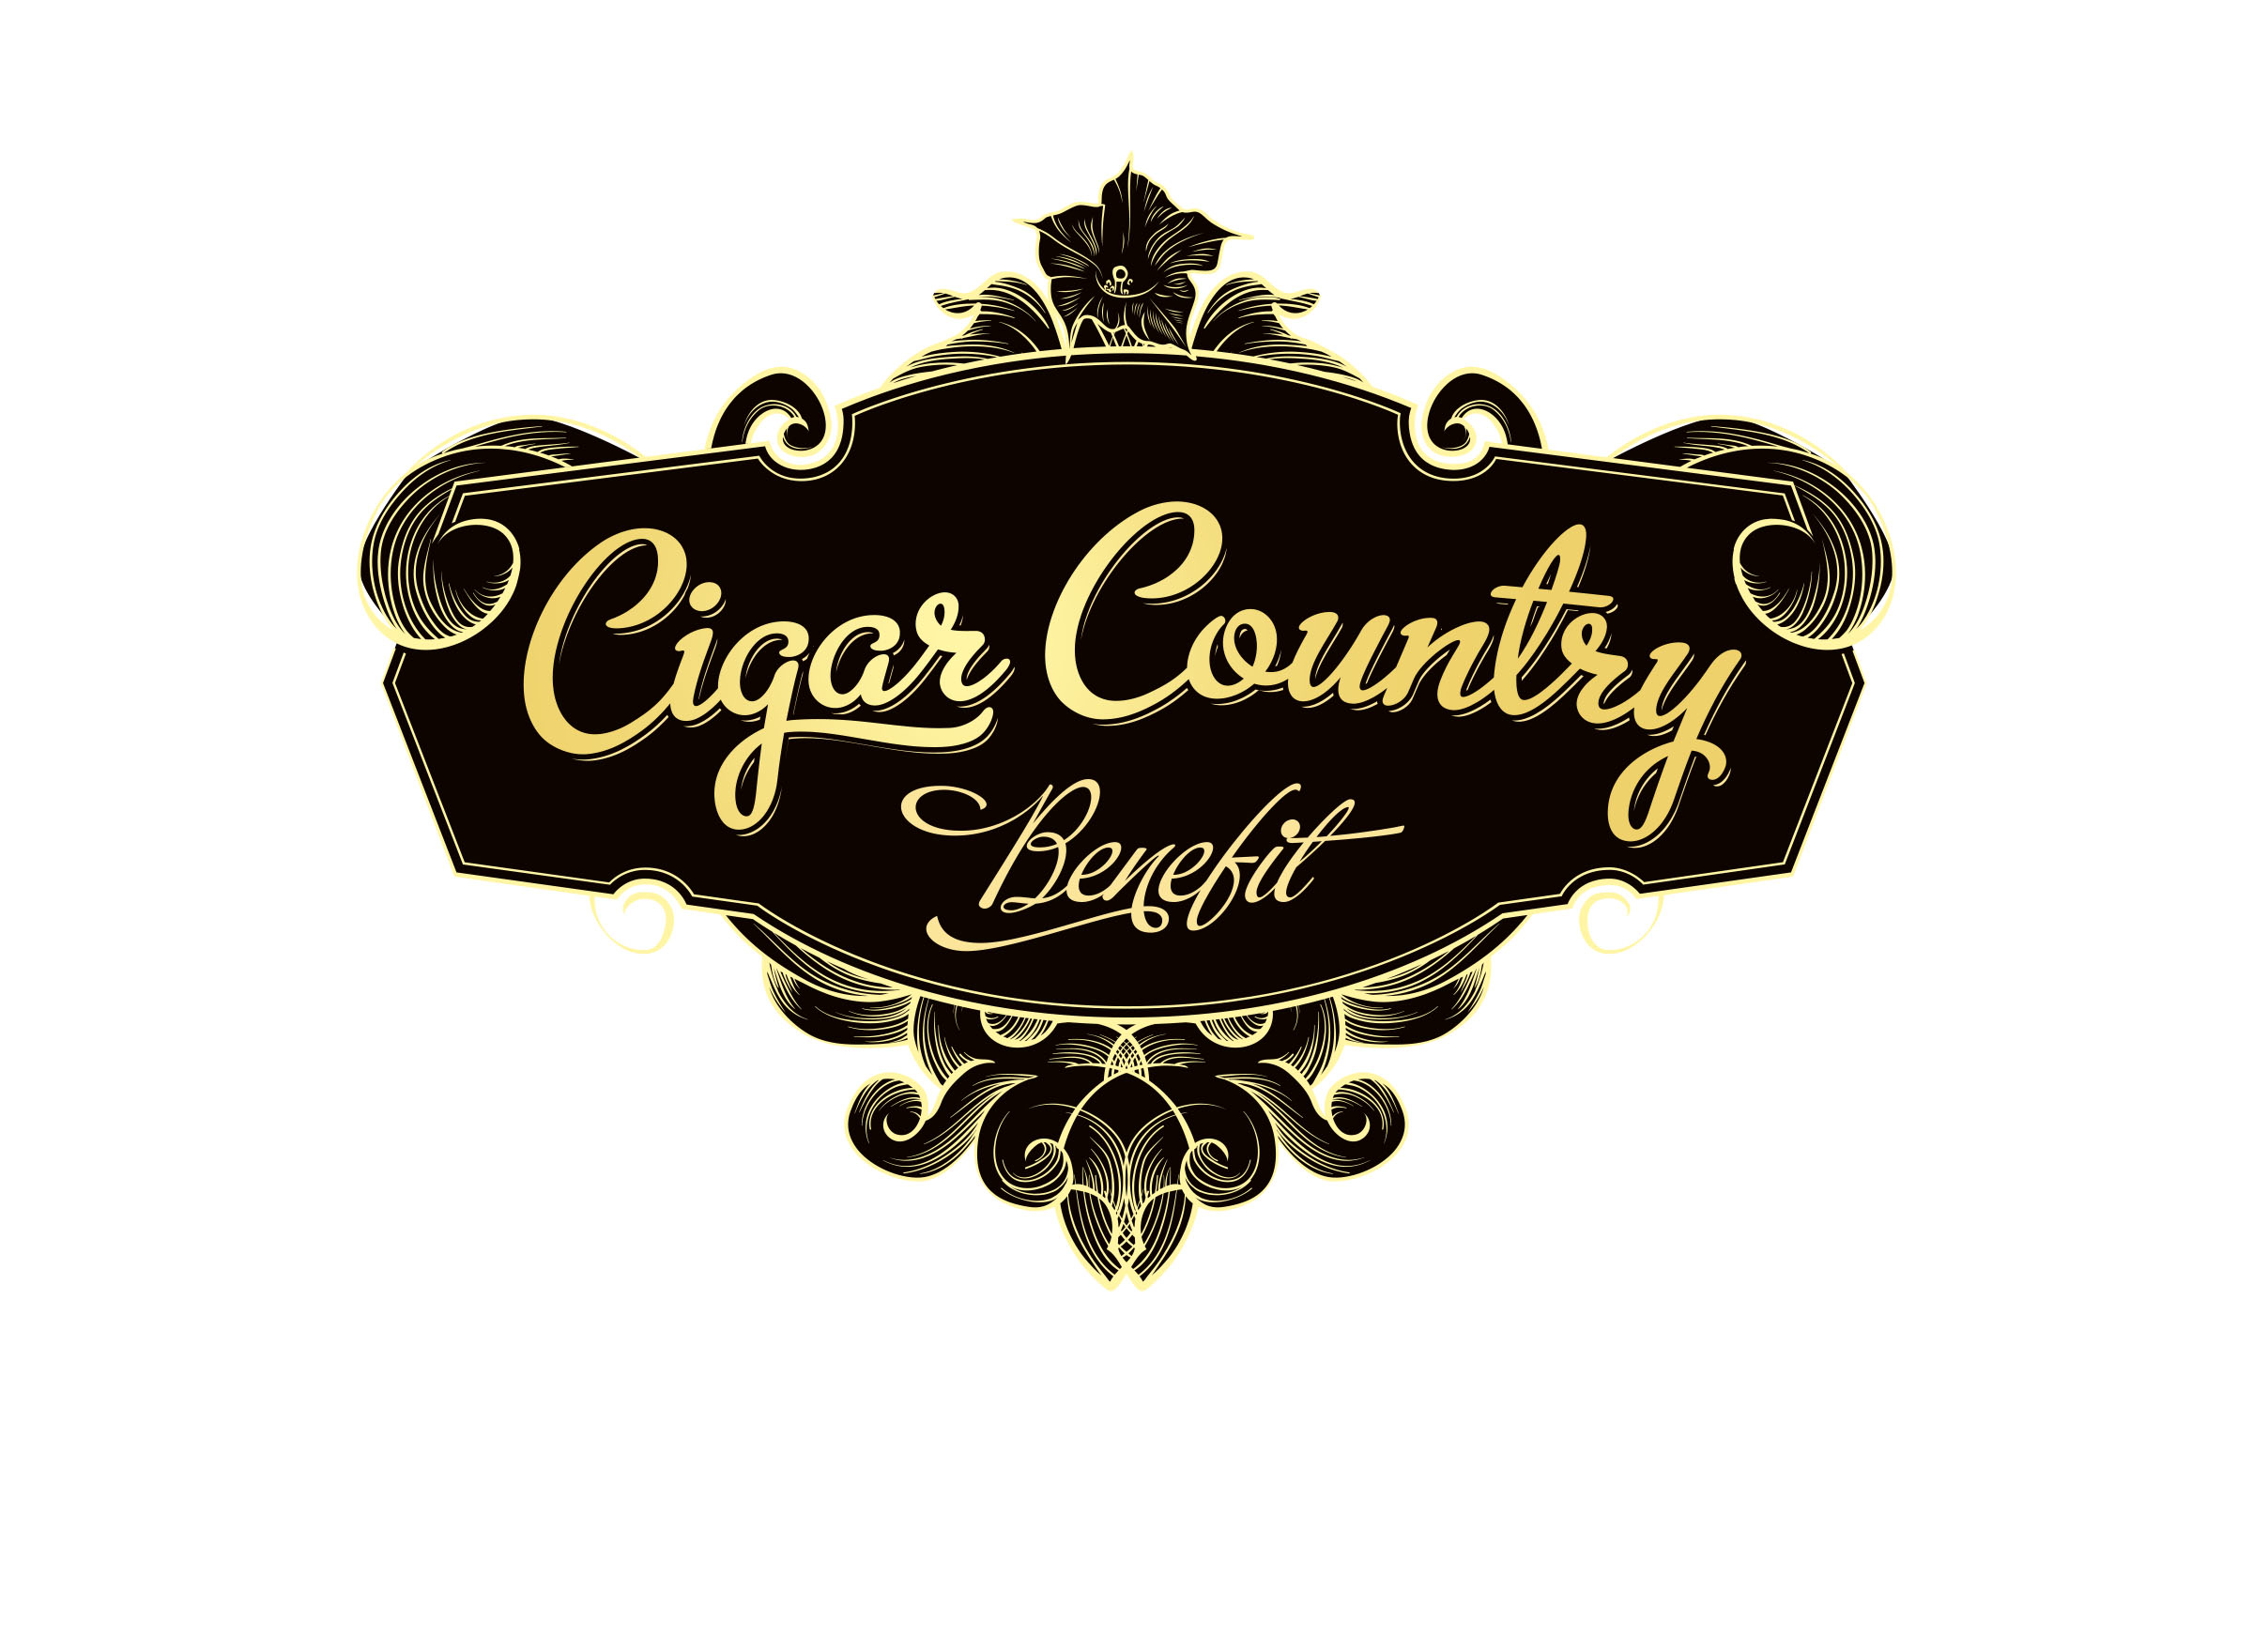 Cigar Country.jpeg